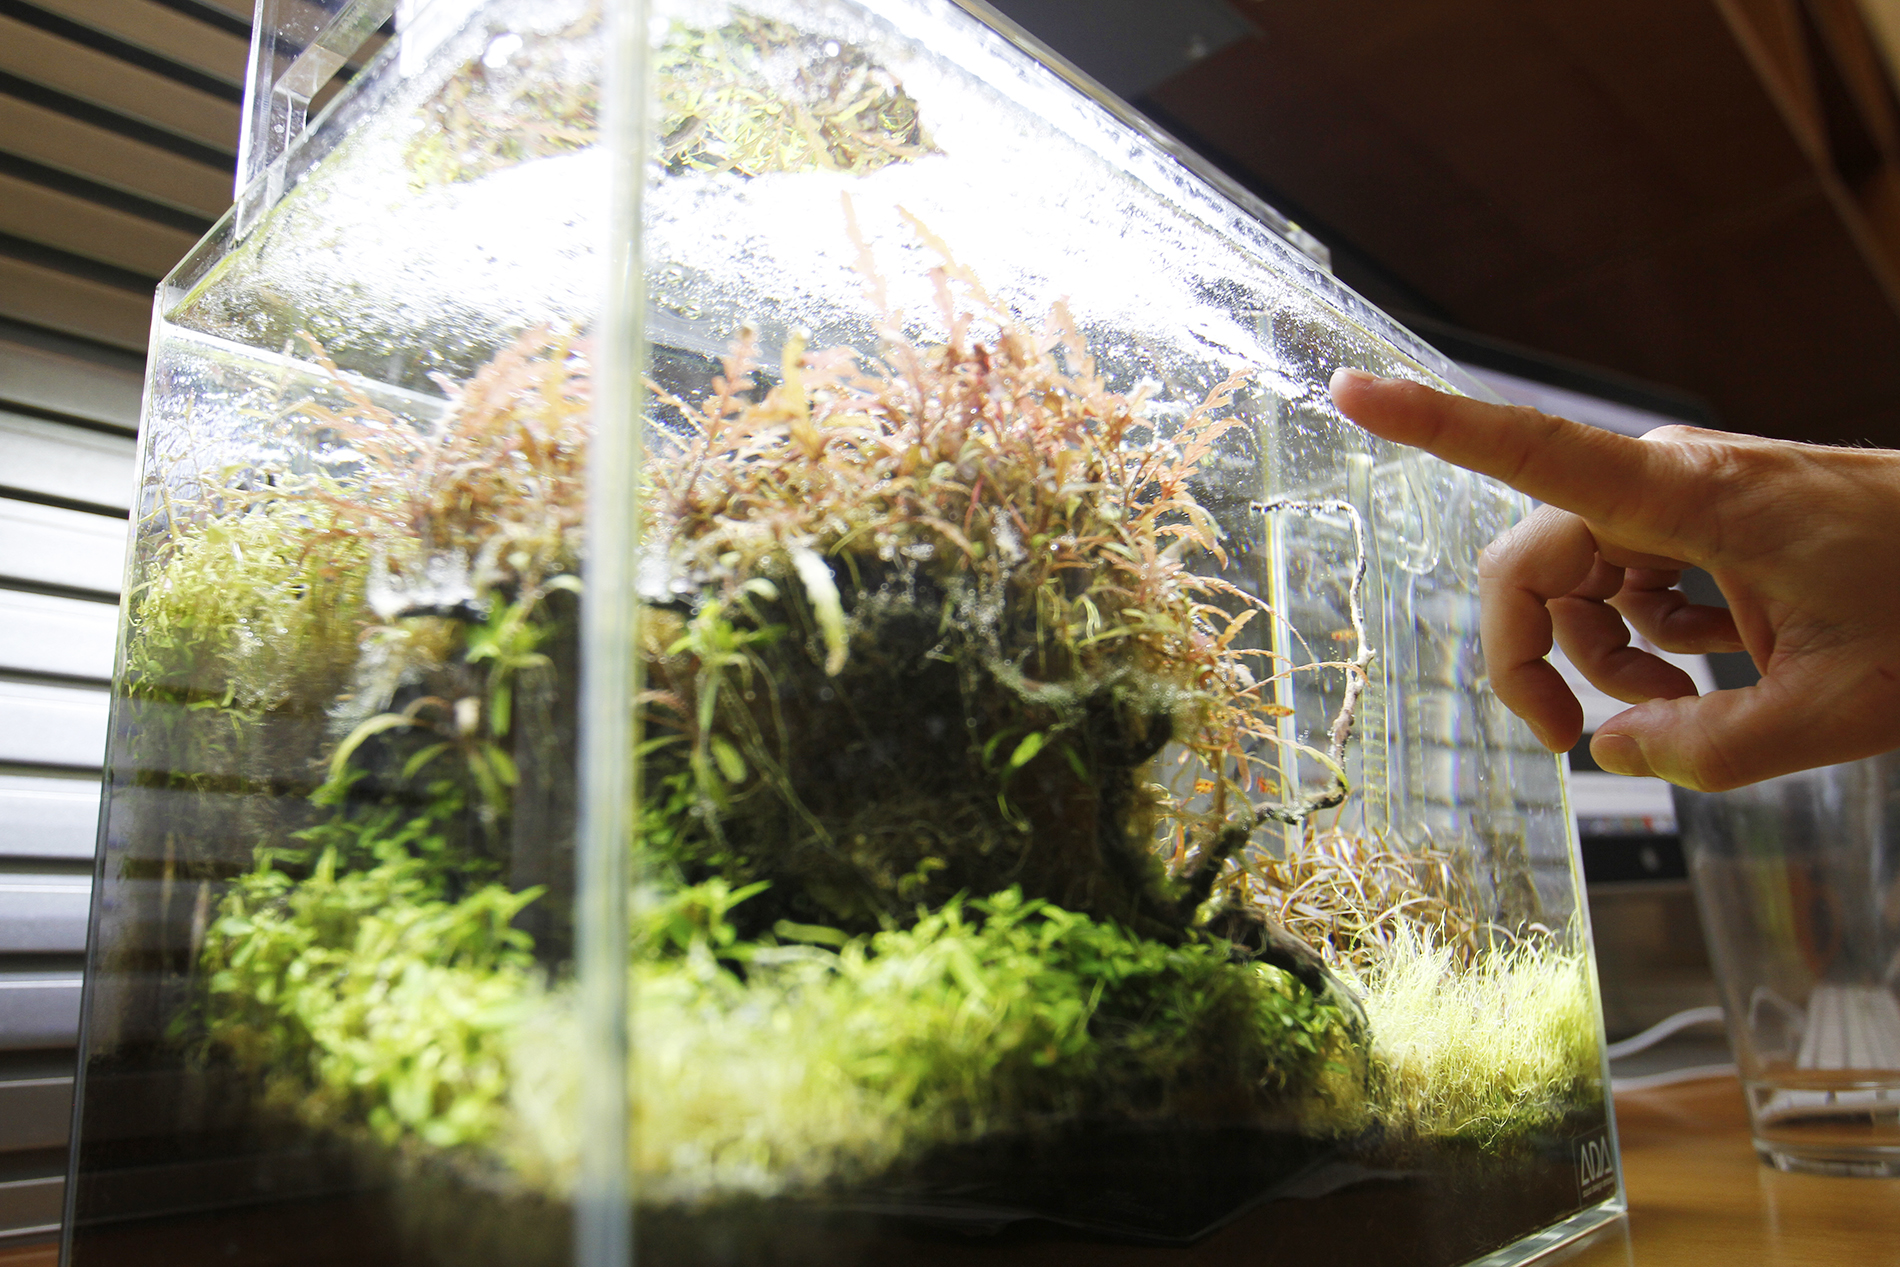 Dave Nicewicz points to the oxygen bubbles in his freshwater aquarium.